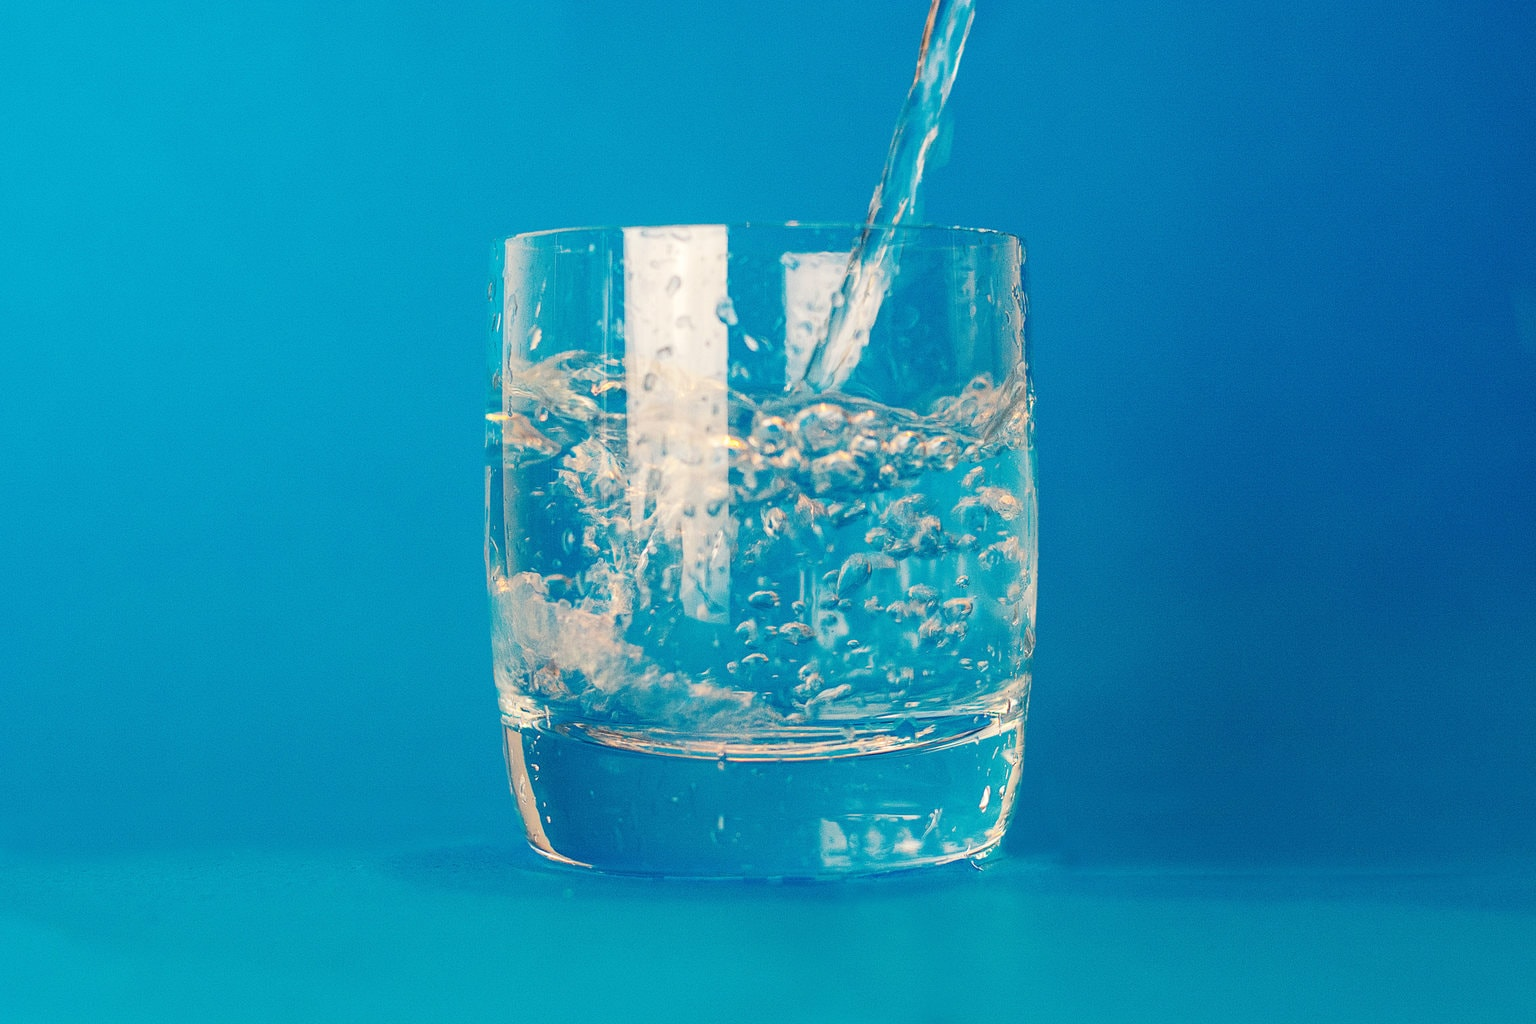 glass of water with blue background